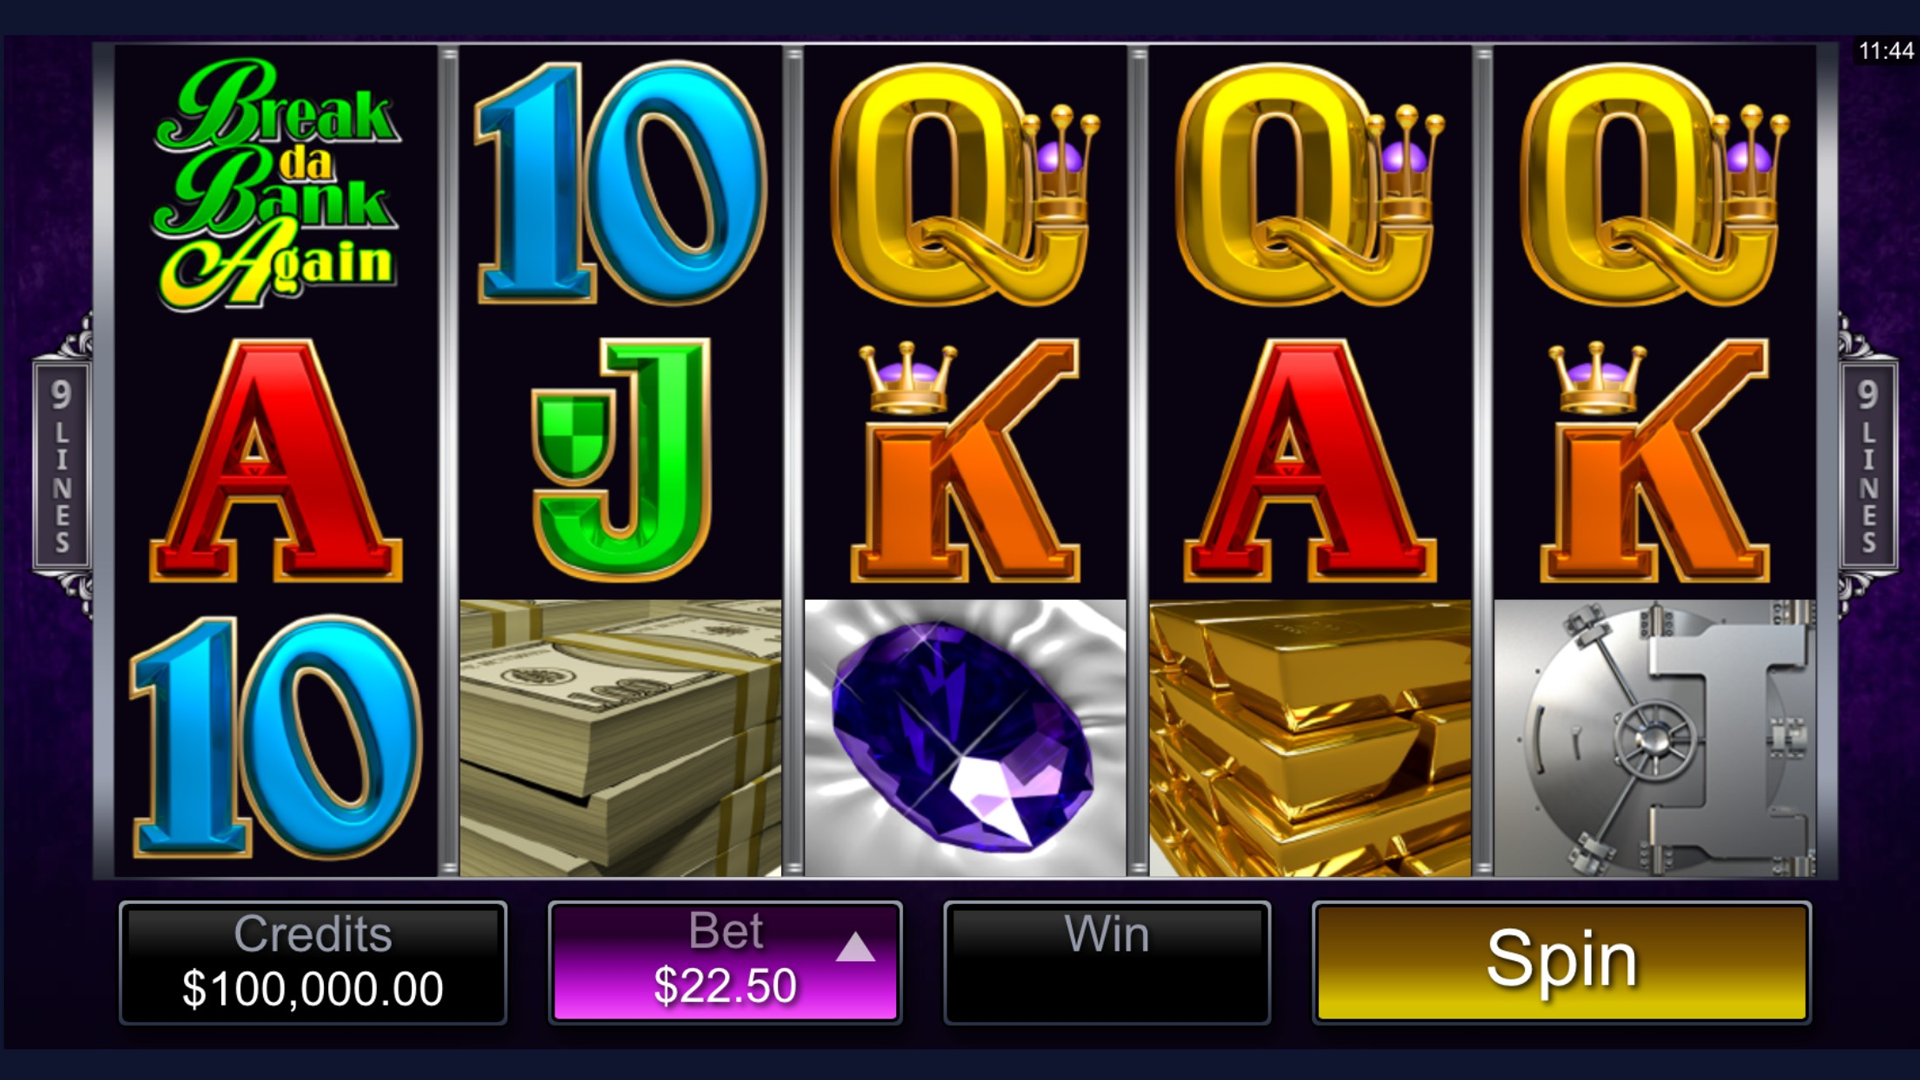 Break da Bank Again Video Slot – Free Online Casino Game